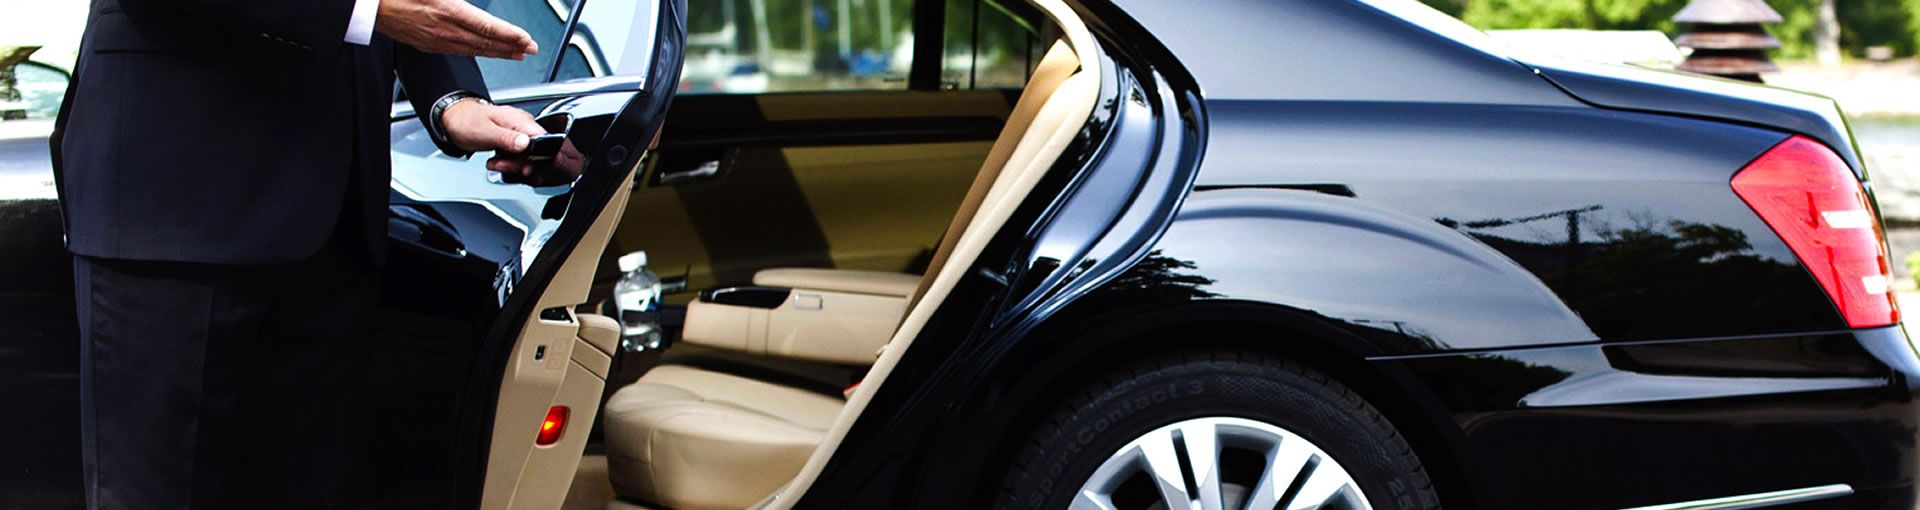 Luxury Transportation Exquisite Los Angeles' Limos